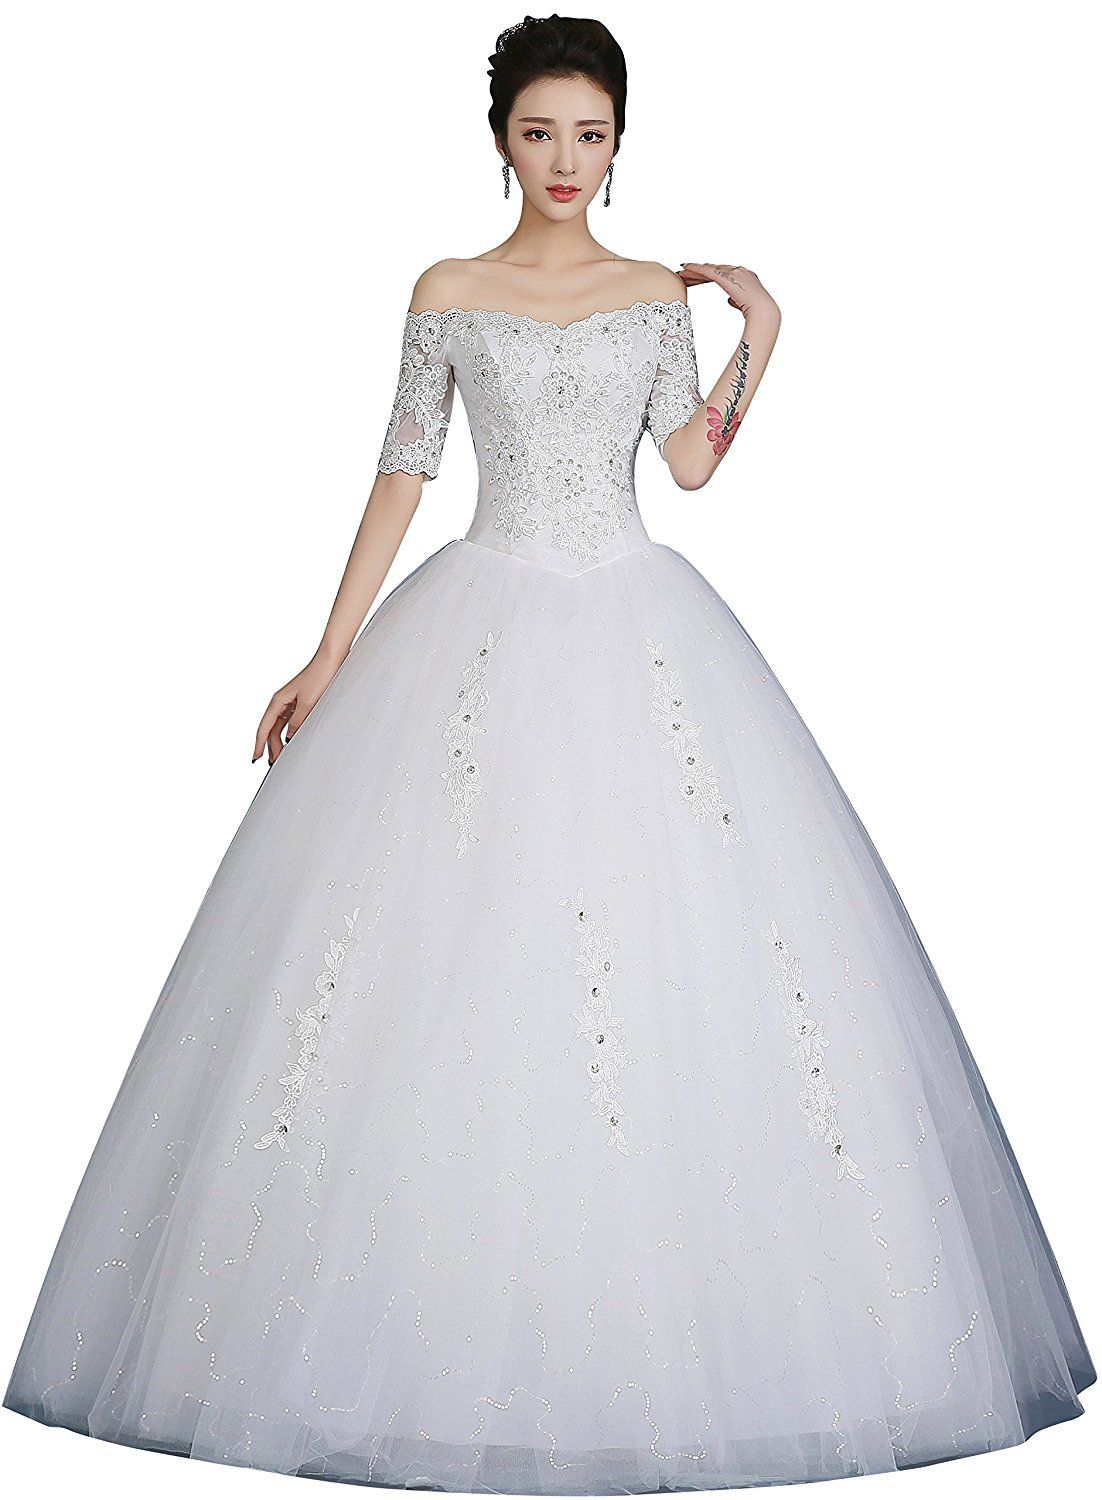 Obqoo off shoulder half sleeves lace beaded ball gown wedding